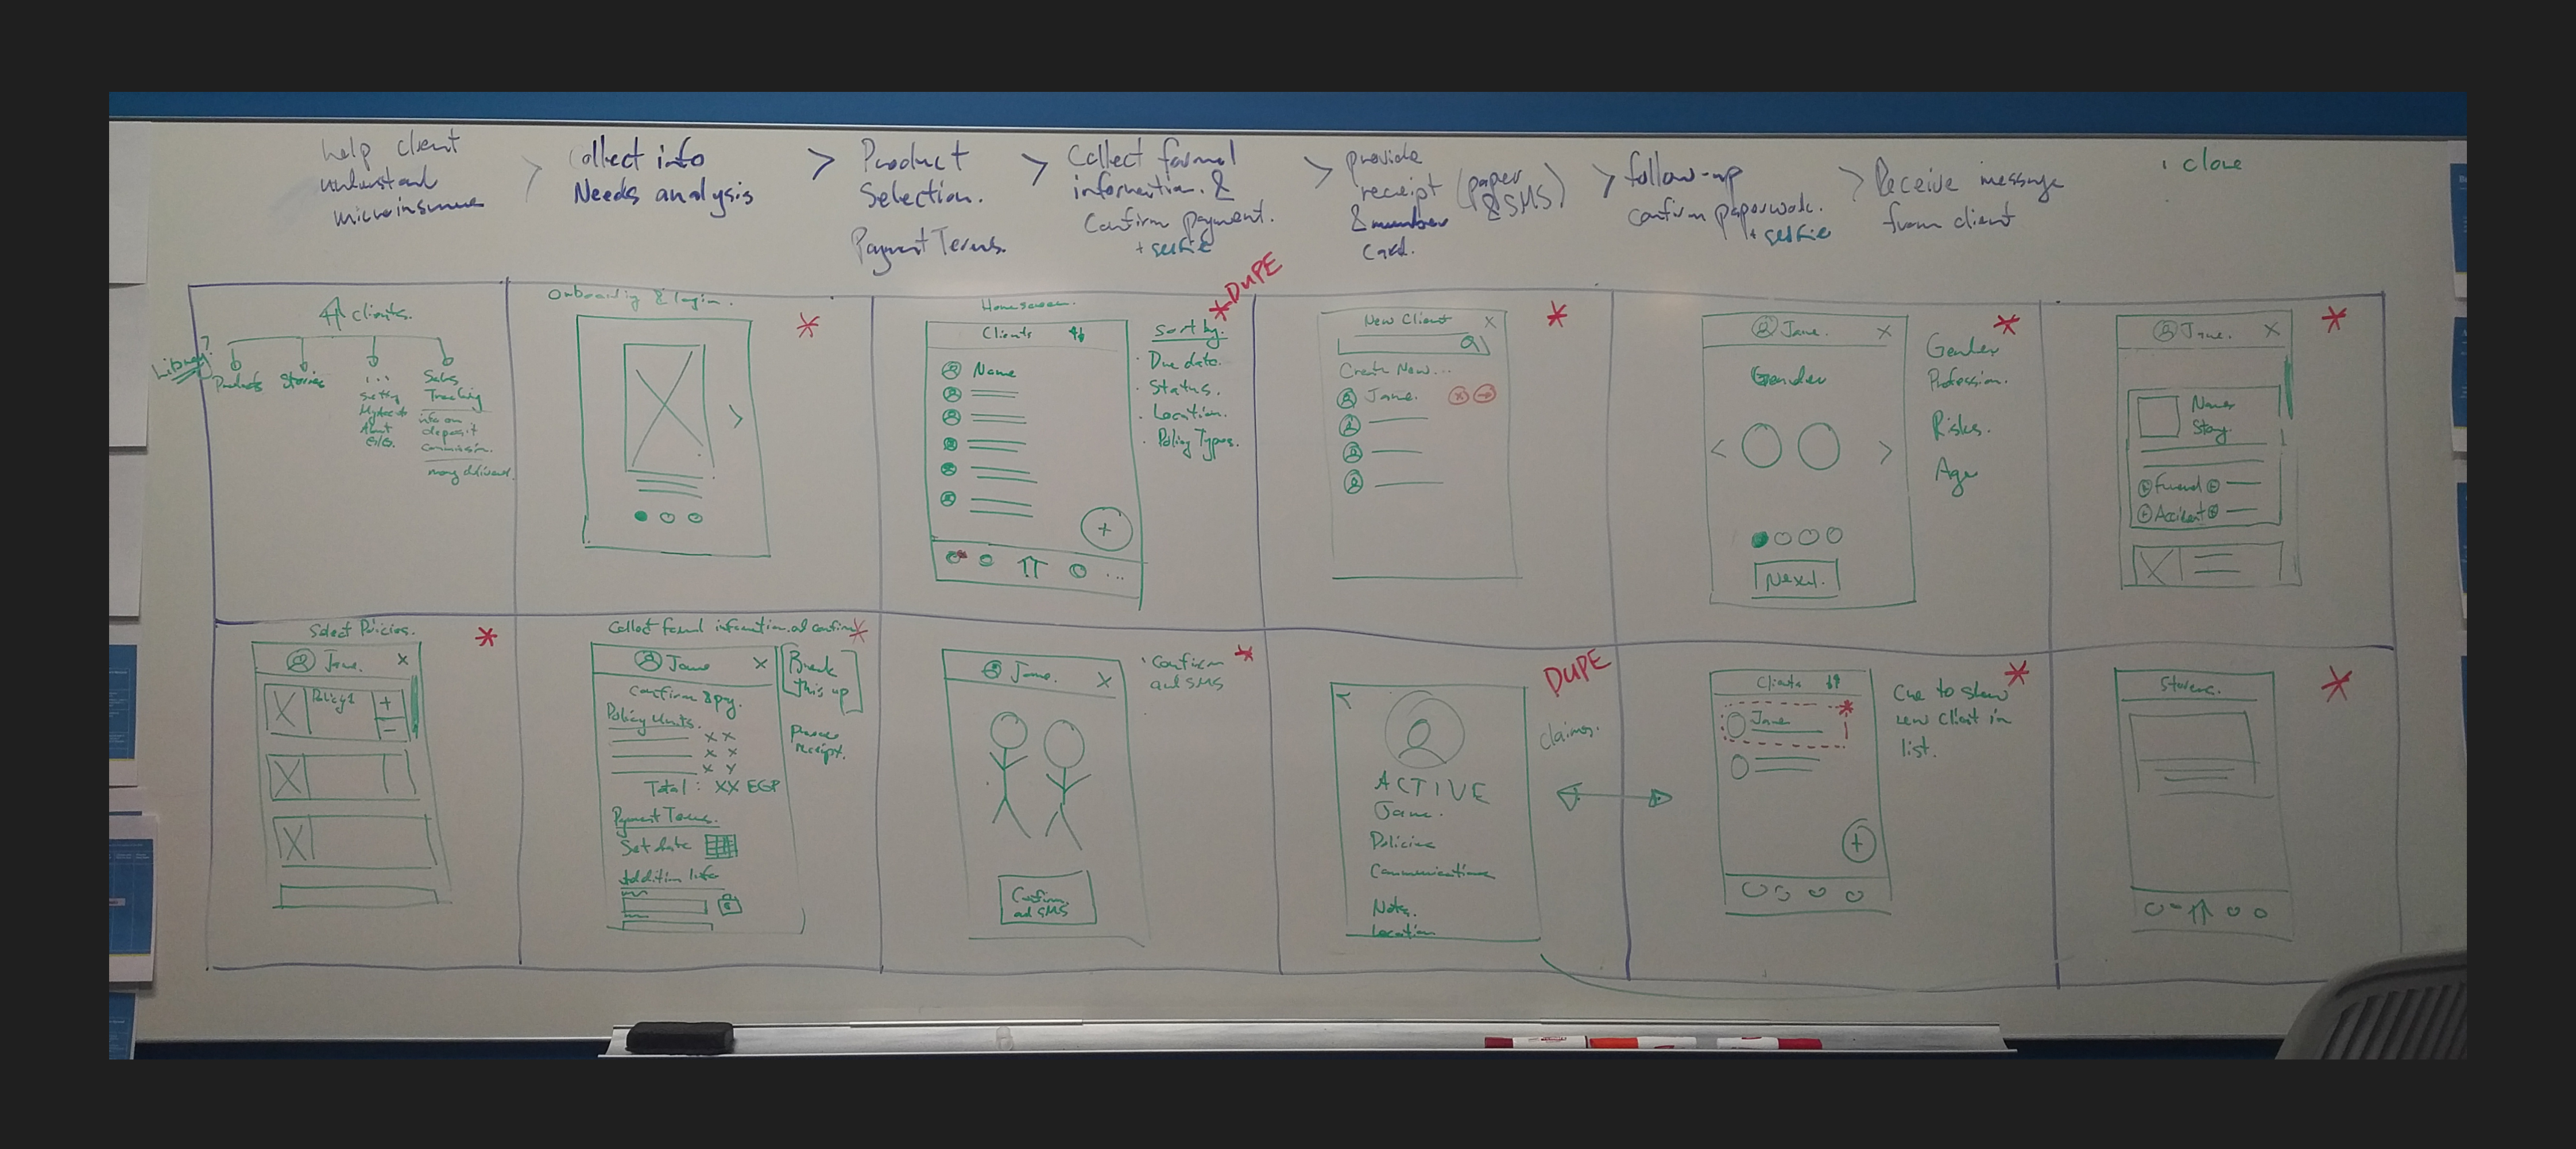 GV design sprint storyboard we conducted.